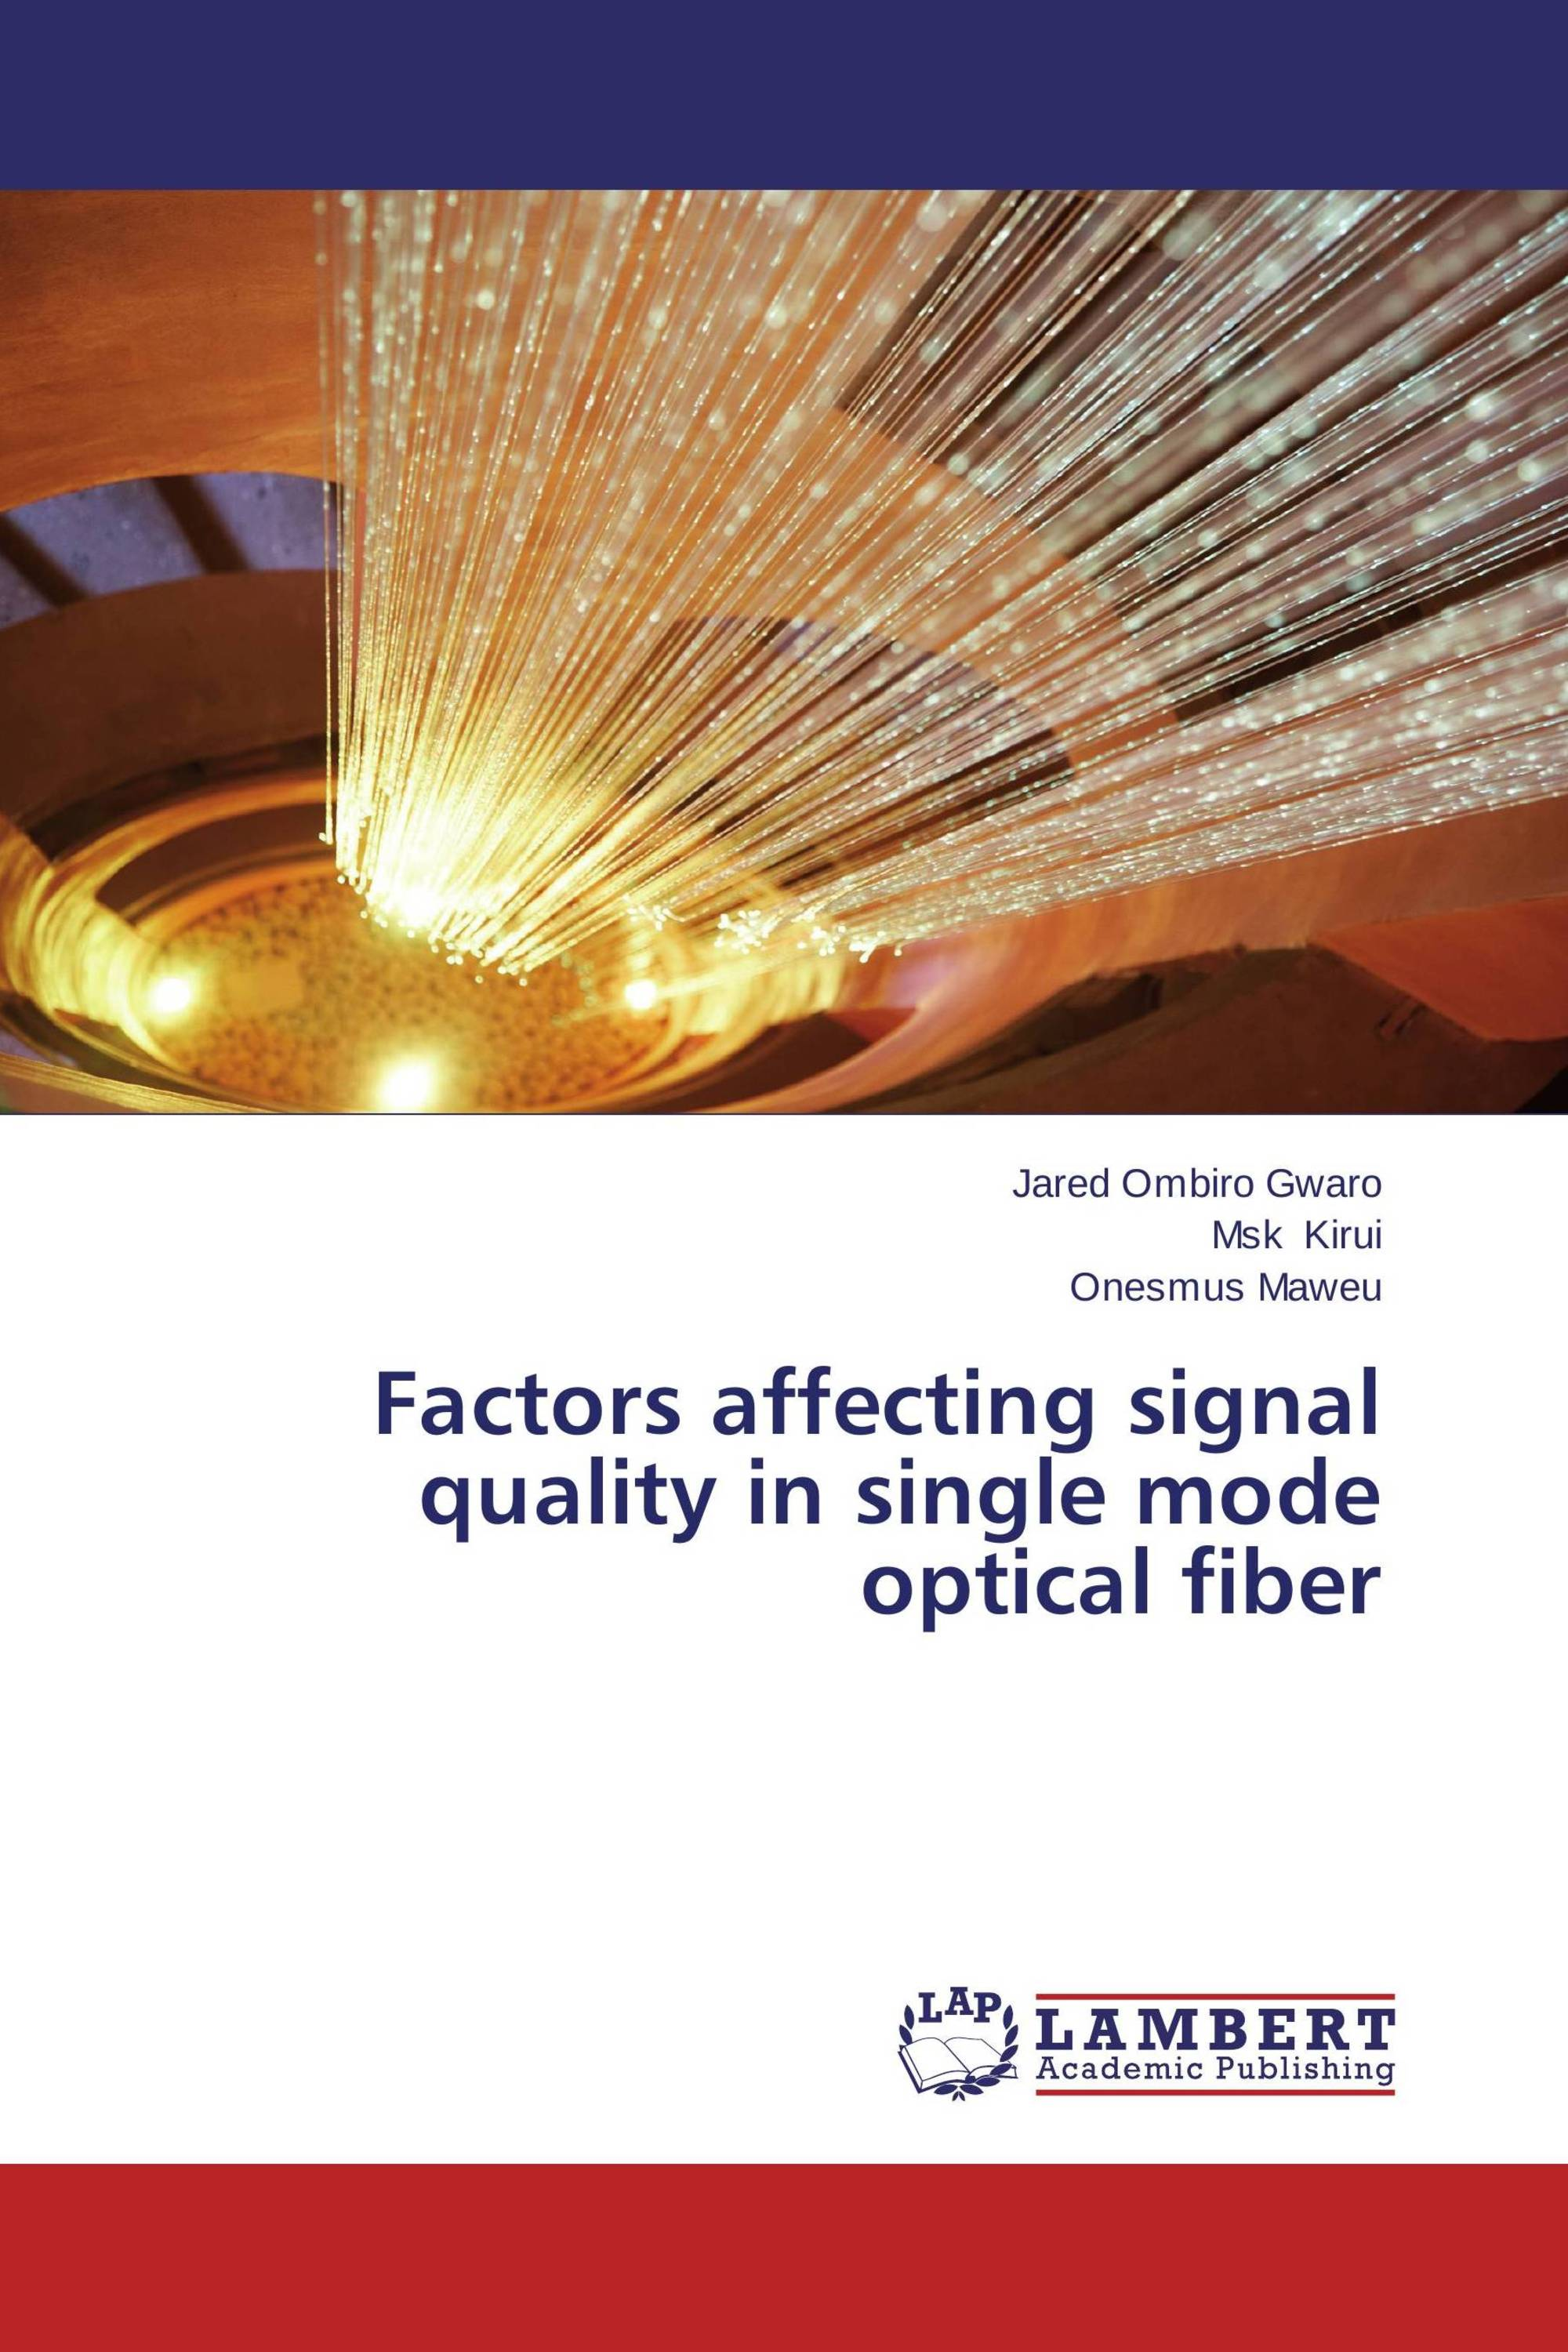 Factors affecting signal quality in single mode optical fiber